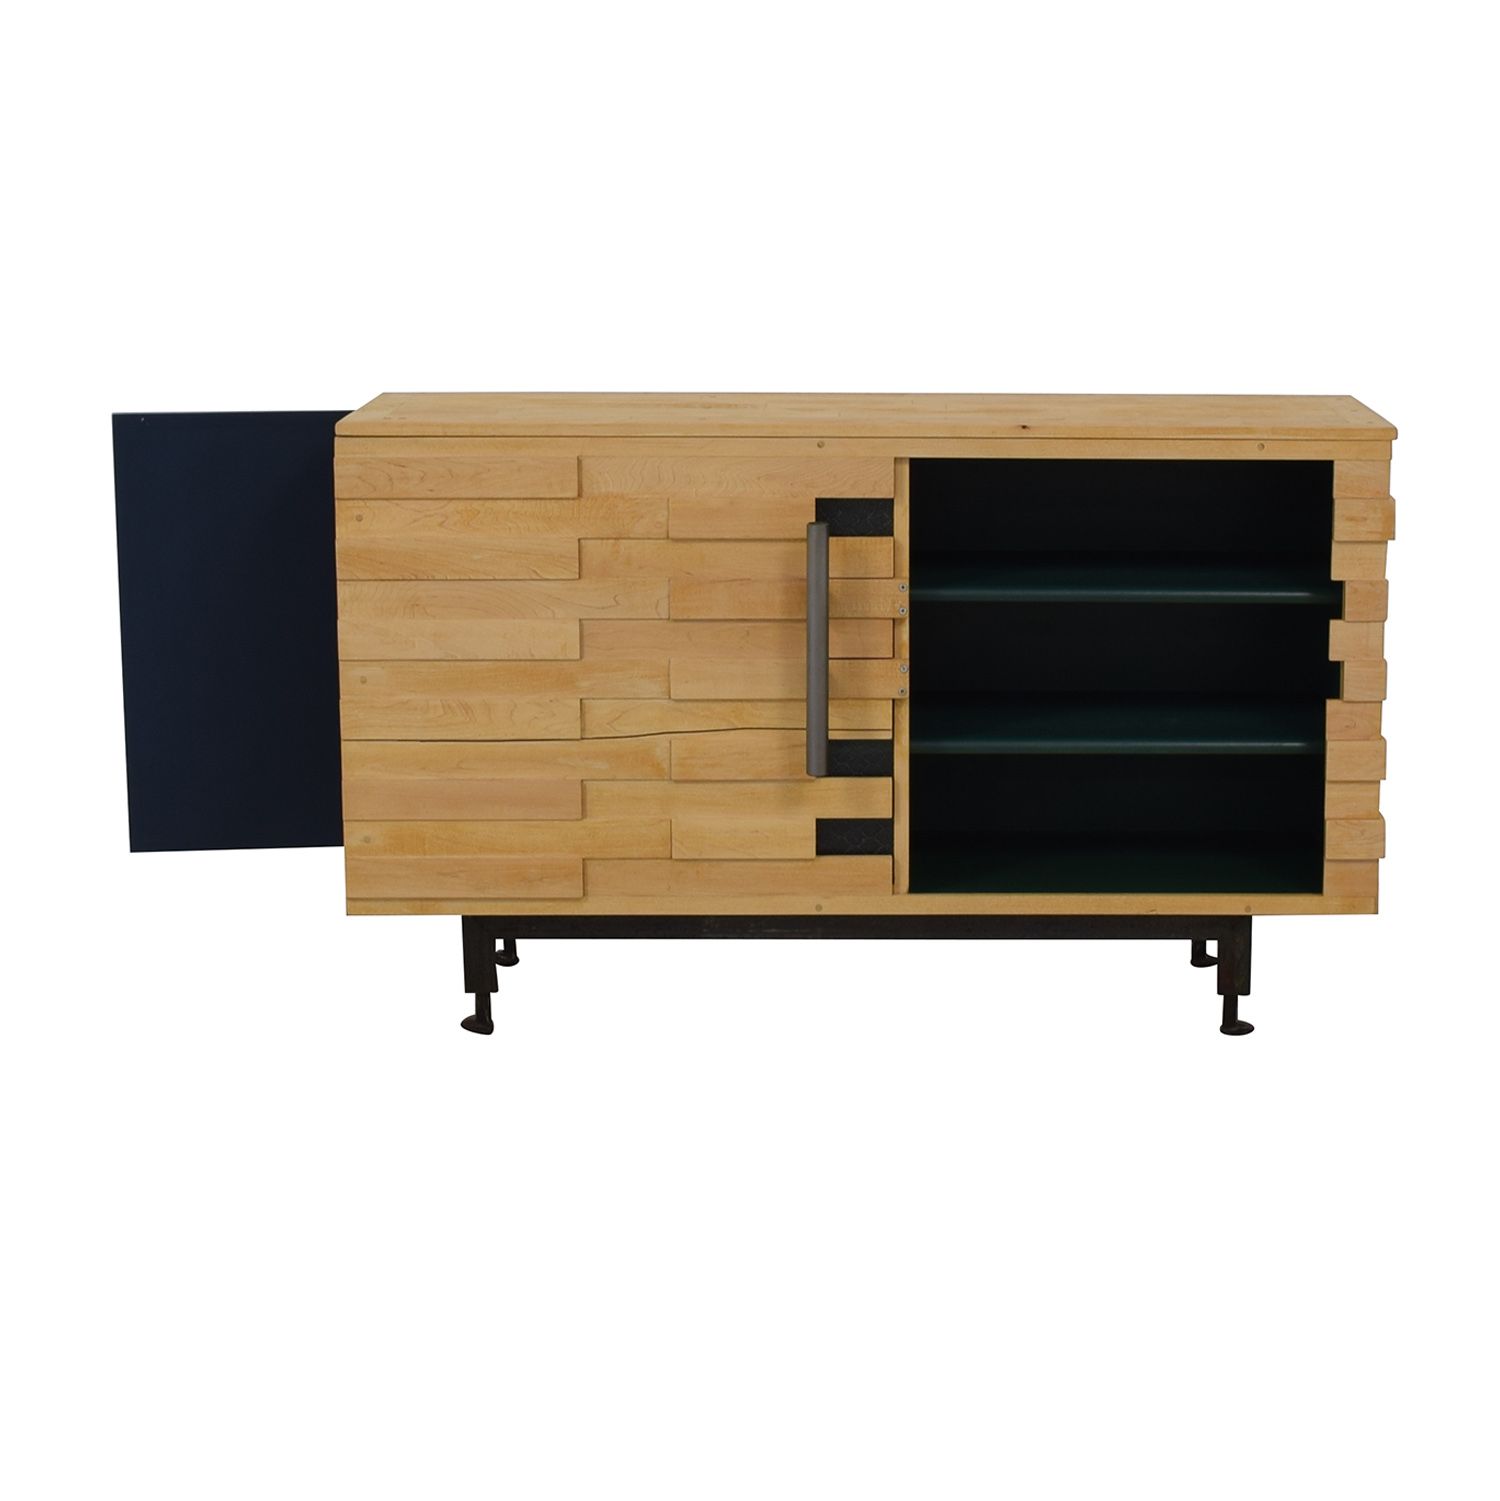 Etsy Etsy Custom Made Modern Credenza brown